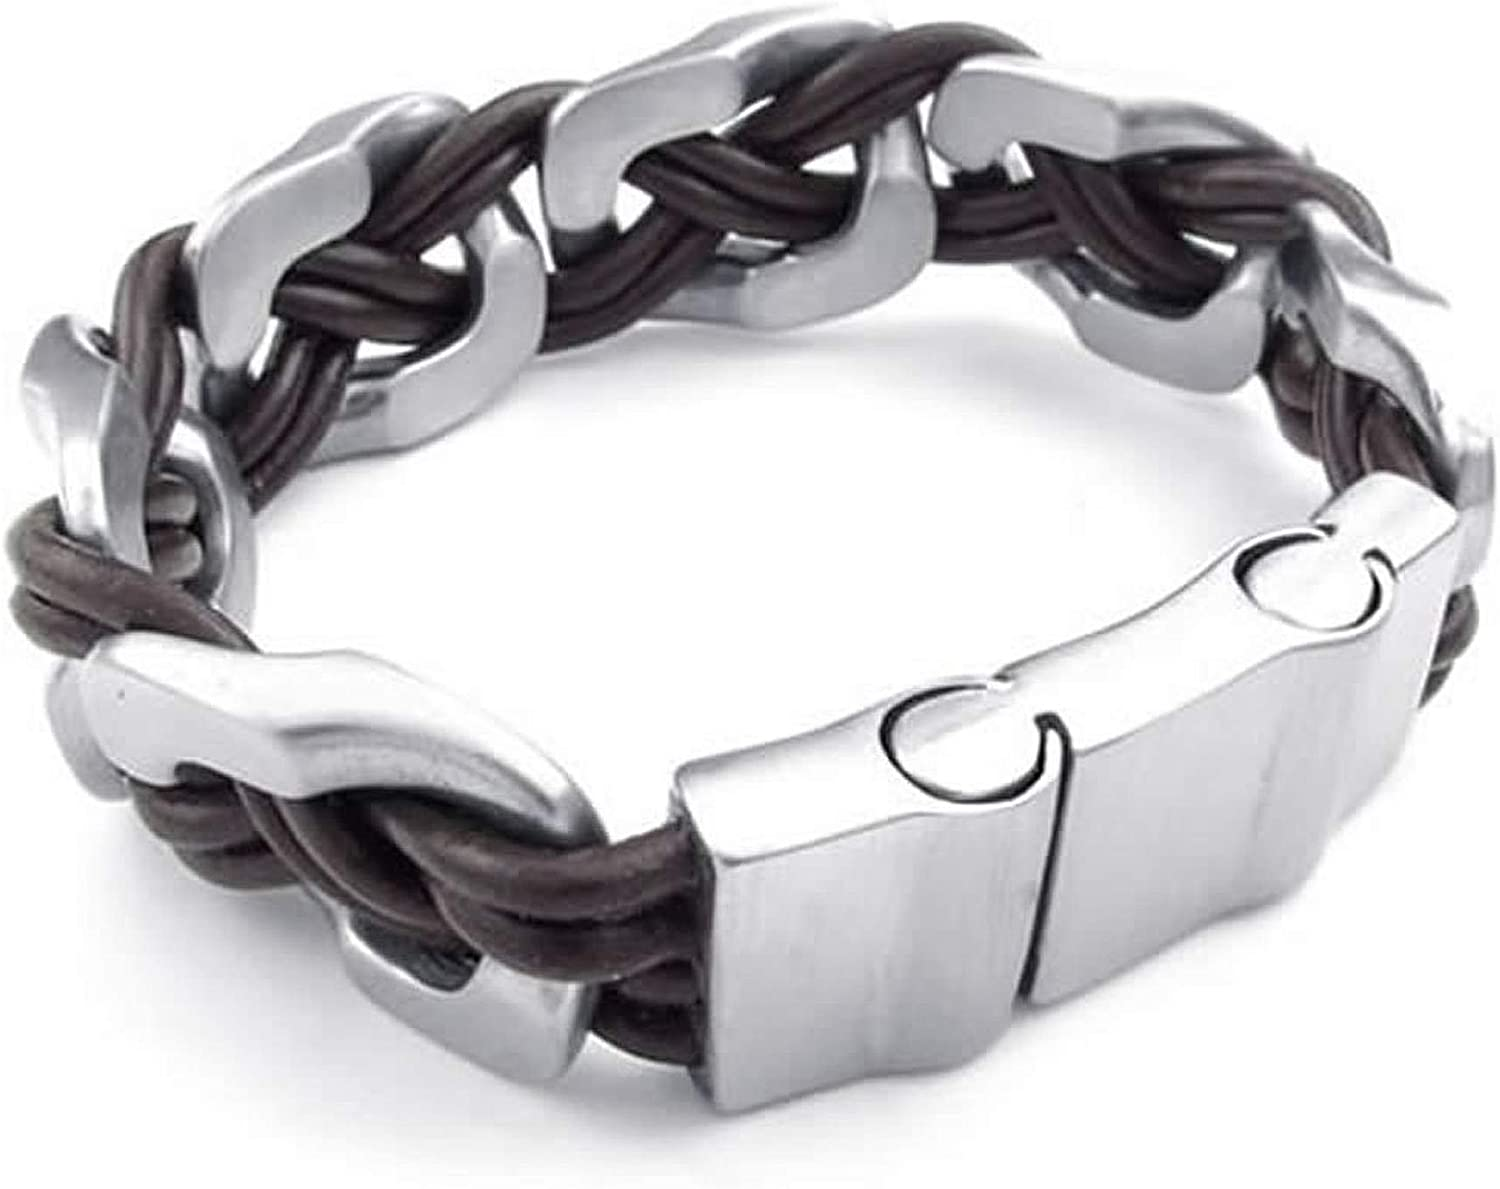 ANAZOZ Black Silver Mens Stainless Steel Leather Cuff Bangle Bracelet Biker